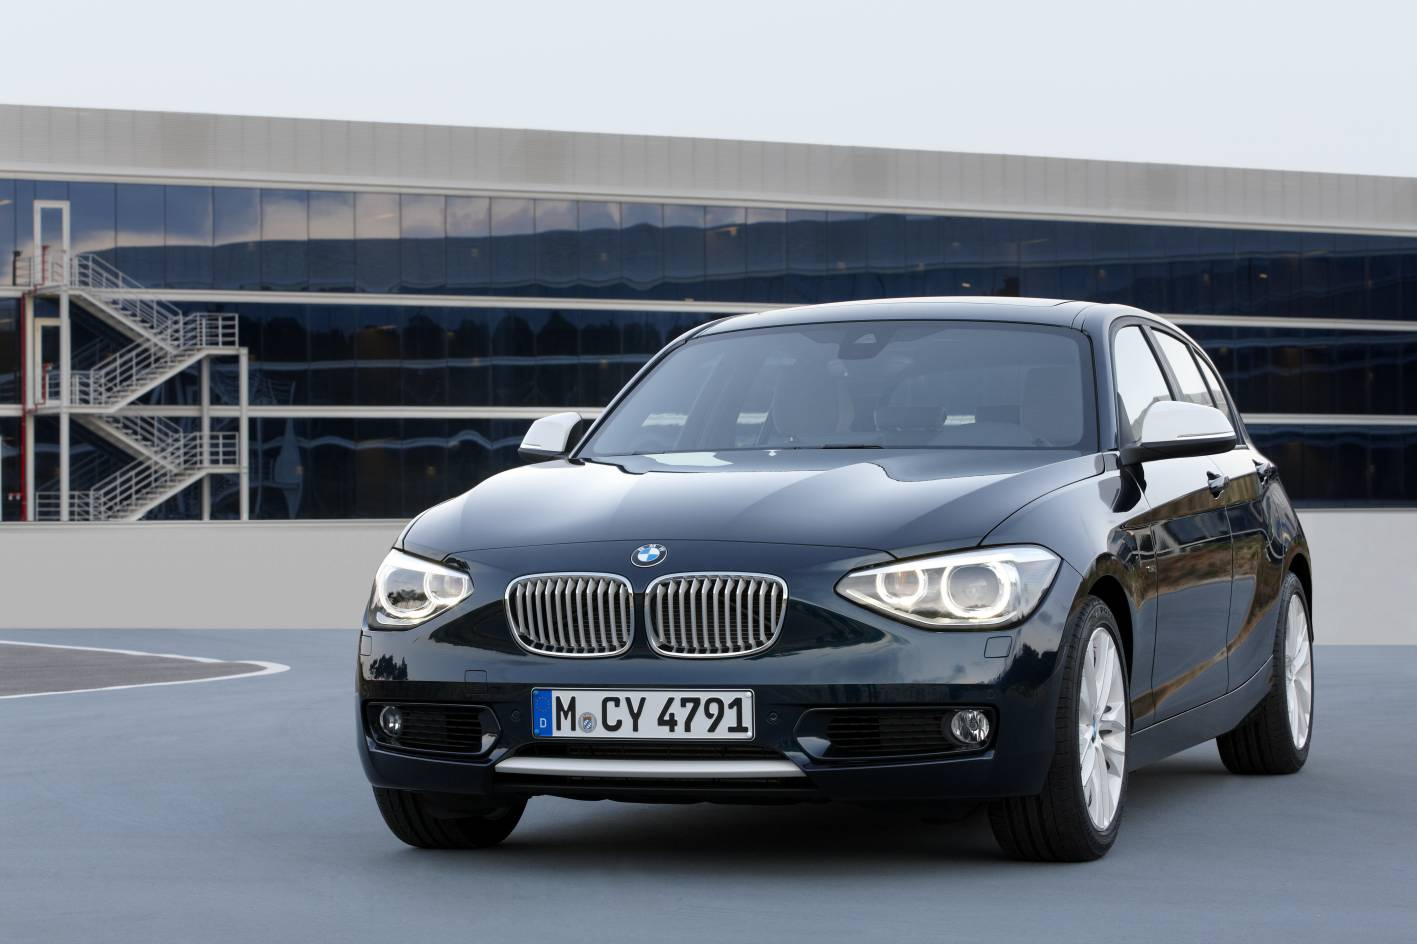 review 2012 bmw 1 series hatchback review rh carshowroom com au bmw serie 1 owner's manual BMW 1 Series M Coupe